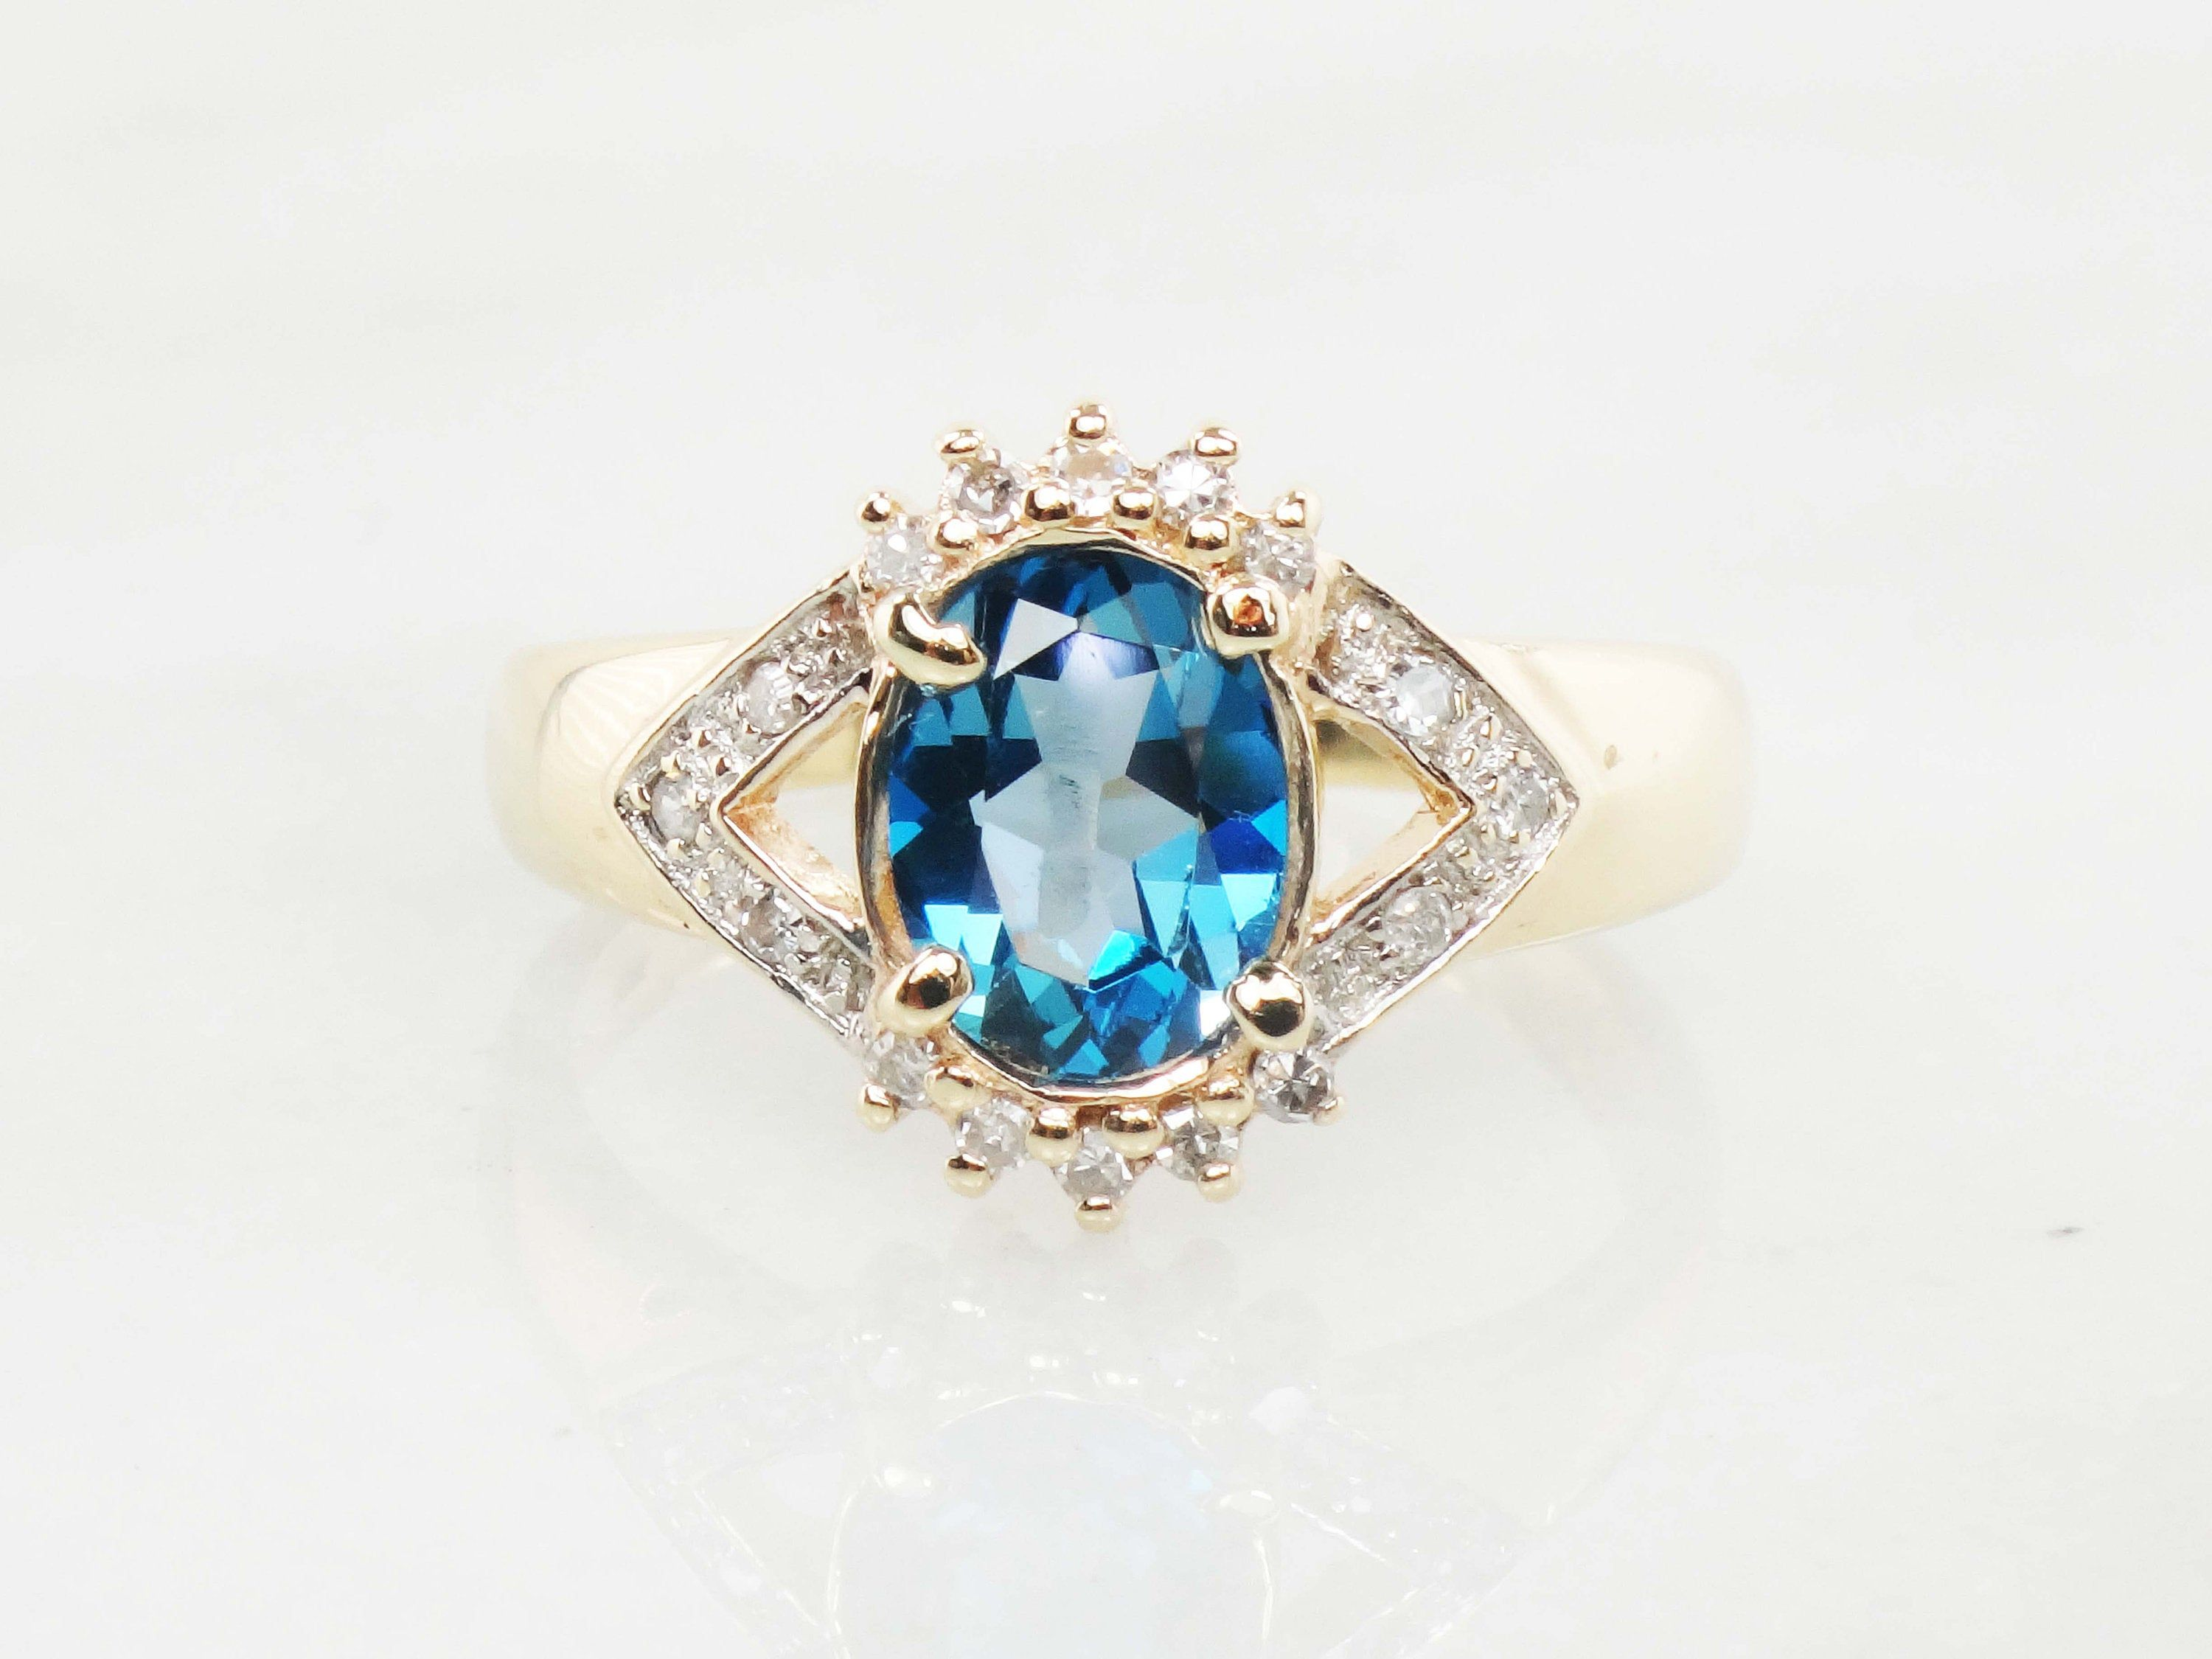 Vintage 10k Blue Topaz Ring Yellow Gold Topaz And Diamond Ring Etsy In 2020 Yellow Topaz Ring Beautiful Gold Rings Blue Topaz Ring